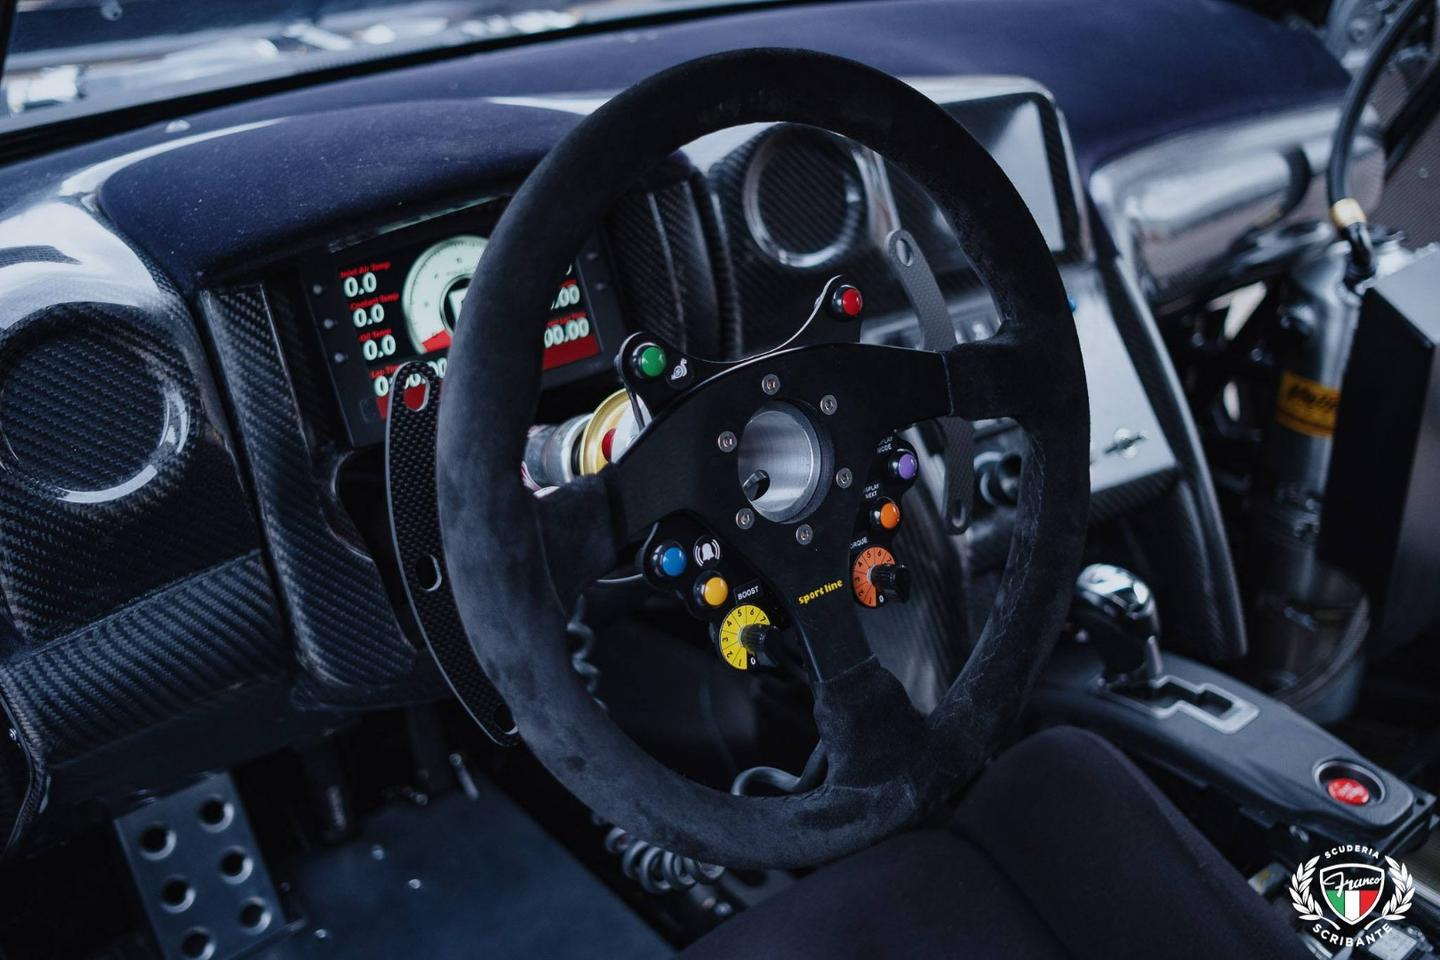 The steering wheel and dash